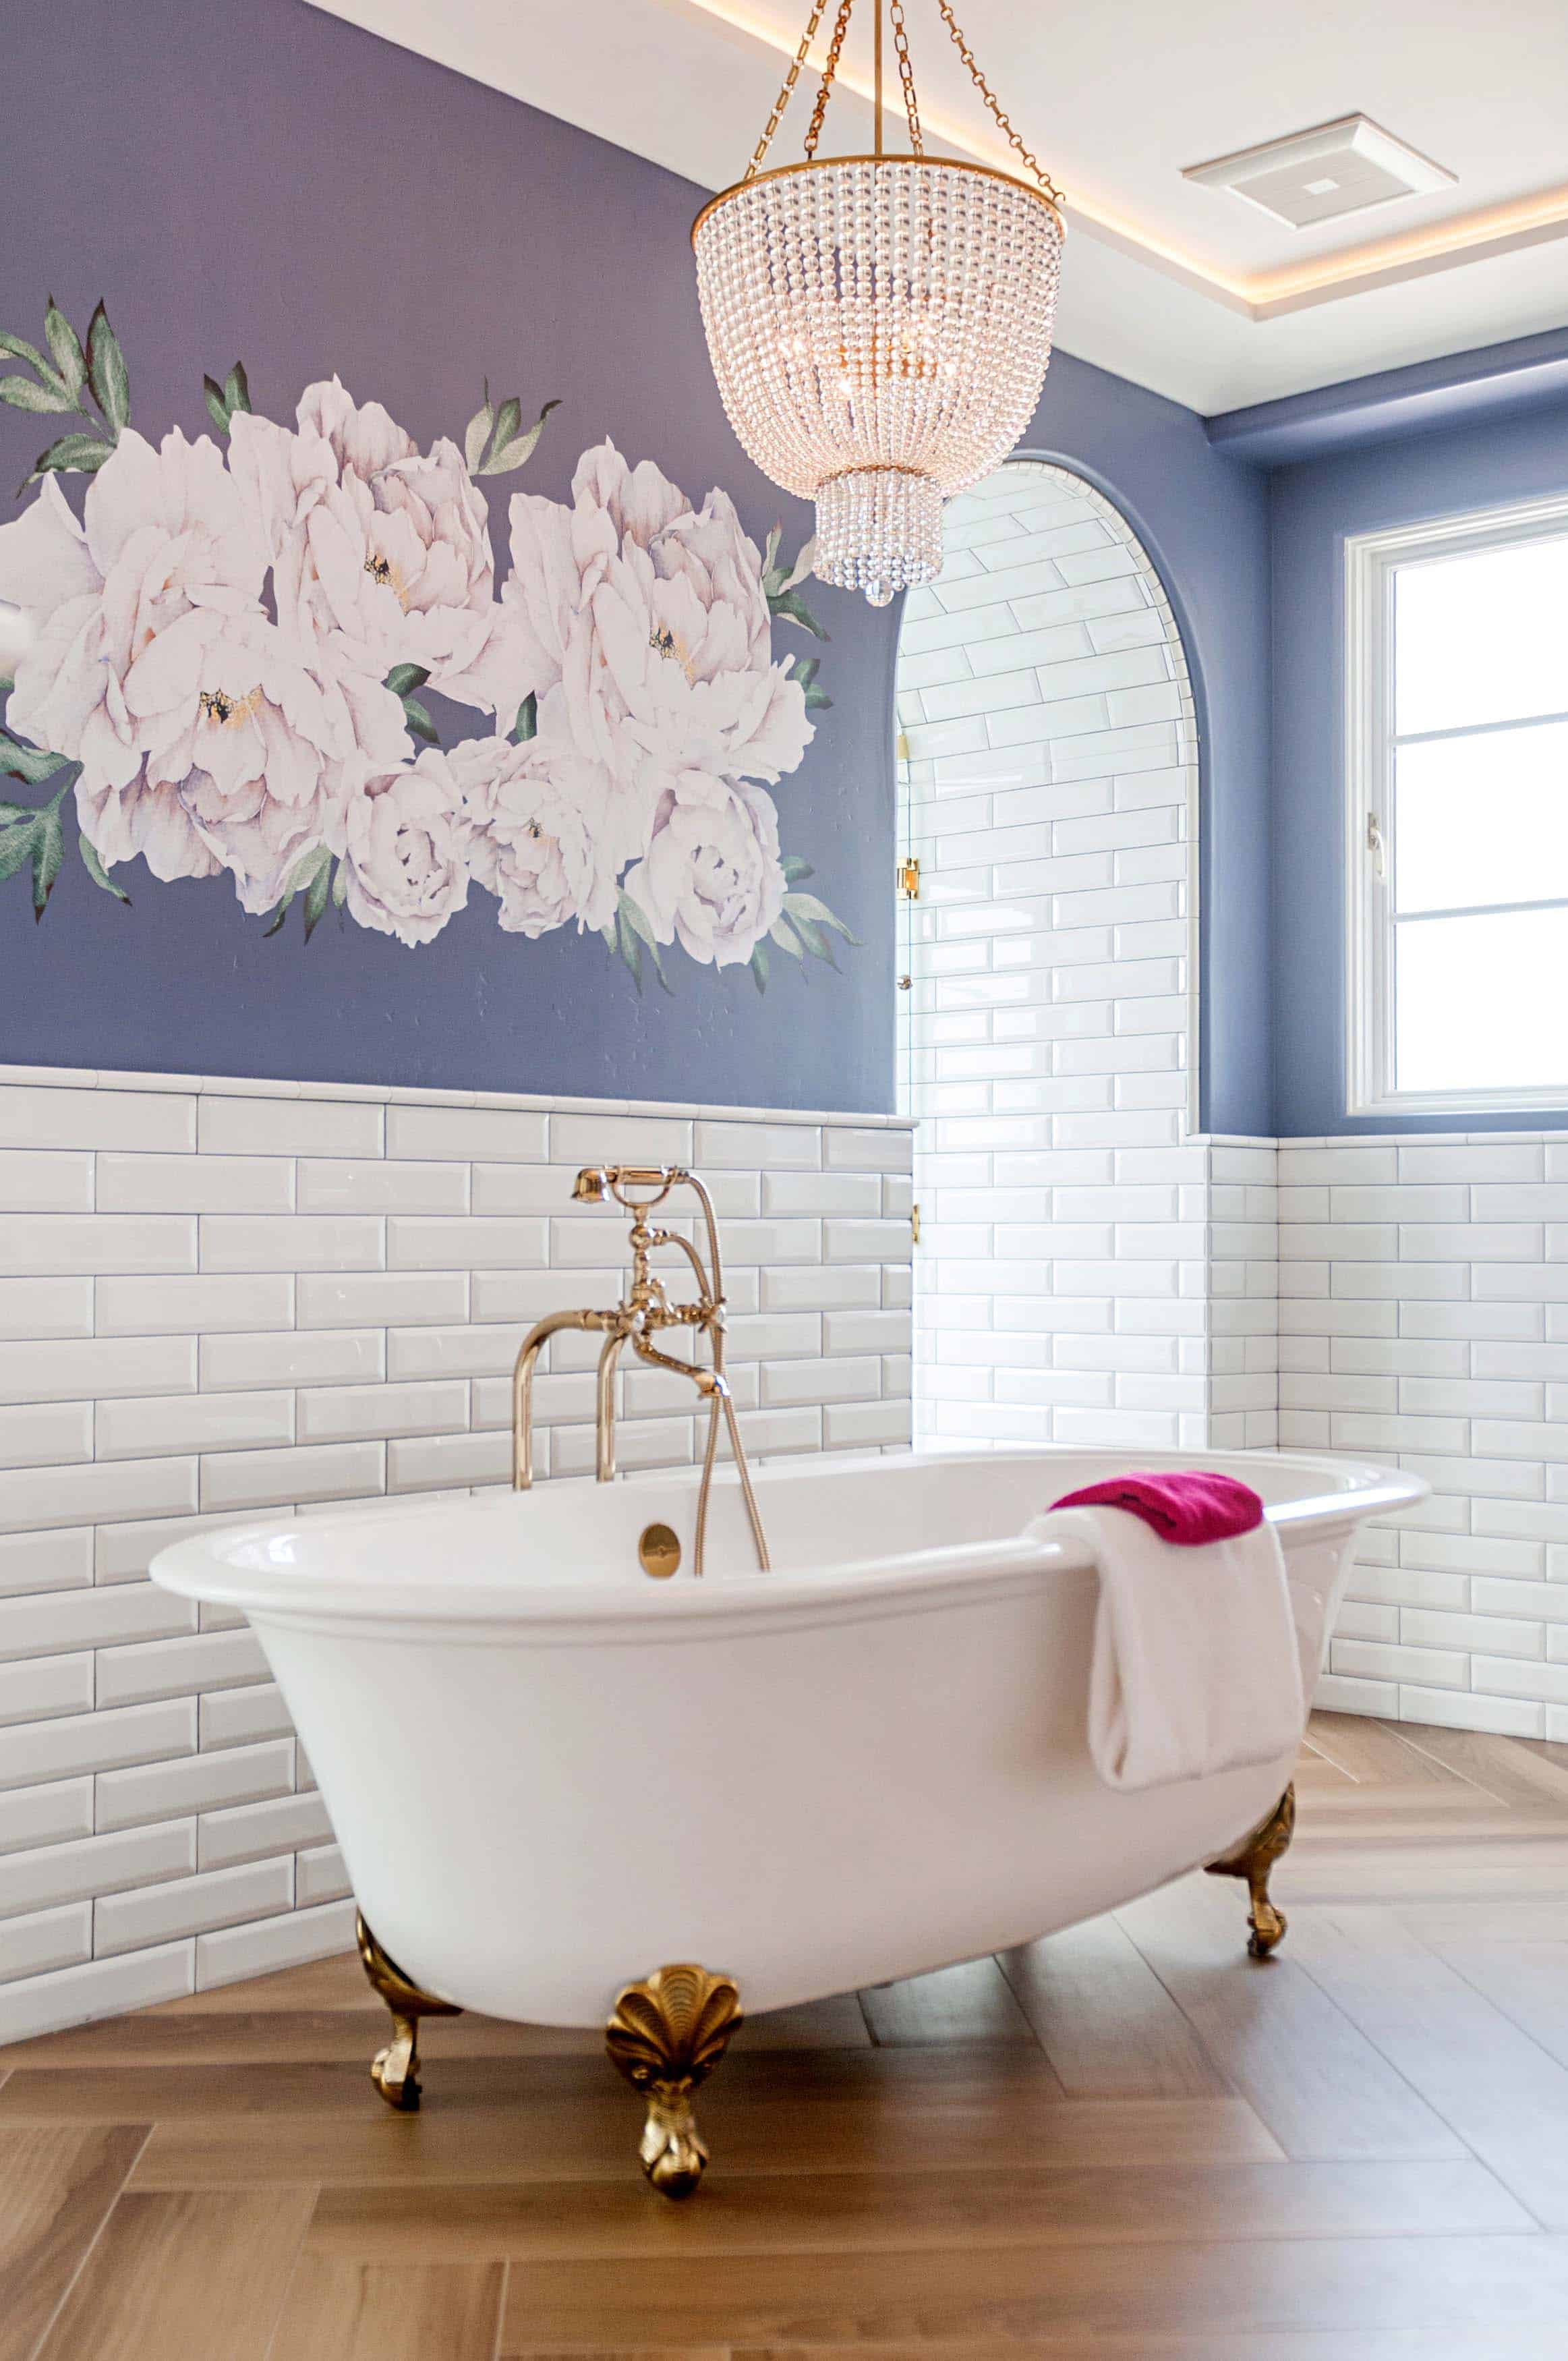 Self Care on Valentine's Day: A Luxurious Bath in Your New Home or Whole Home Remodel